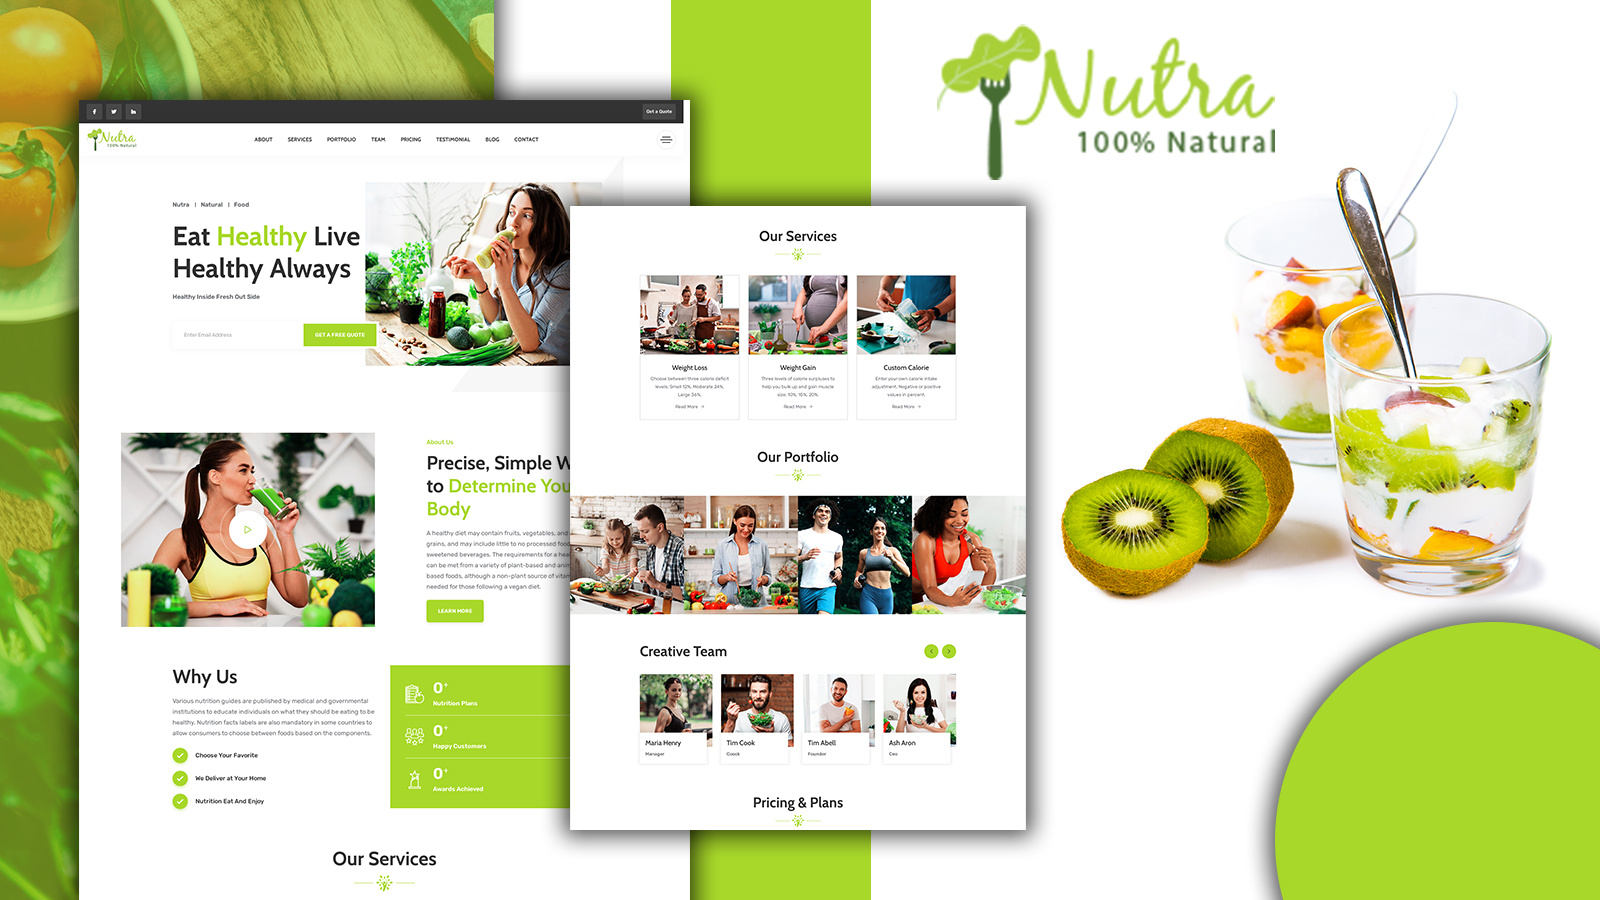 Nutra - Nutrition Services HTML5 Landing Page Template